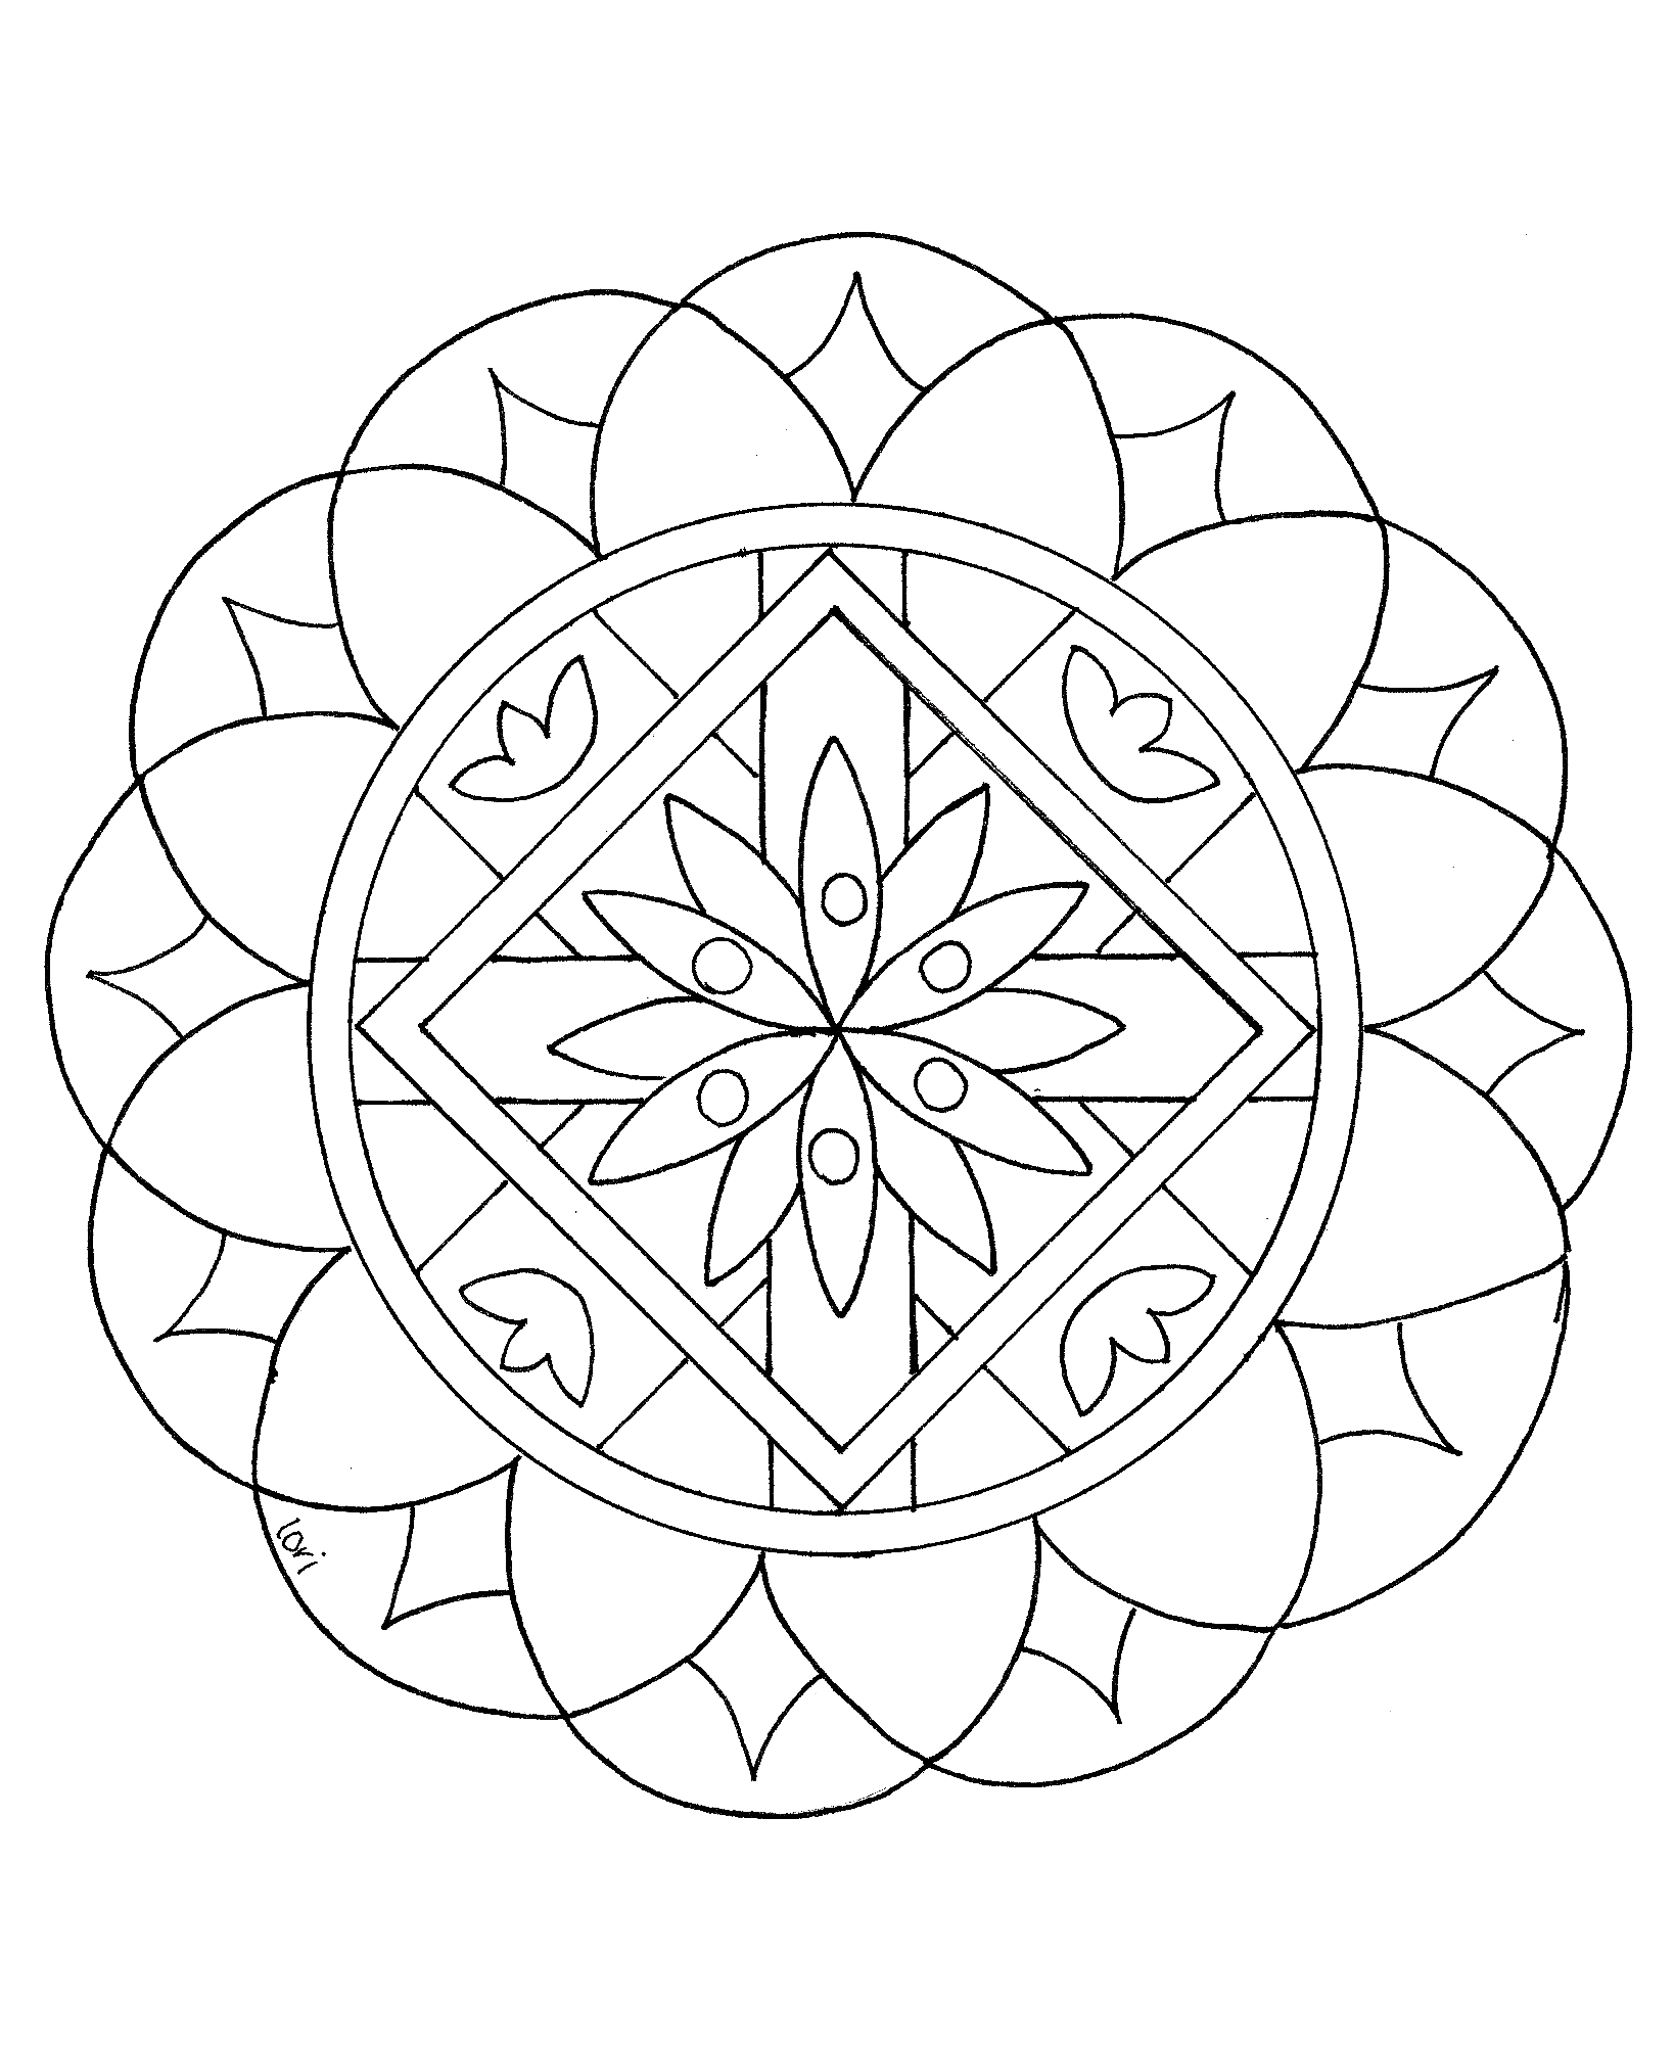 mandala colouring pages for kids flower mandala coloring pages best coloring pages for kids colouring pages kids for mandala